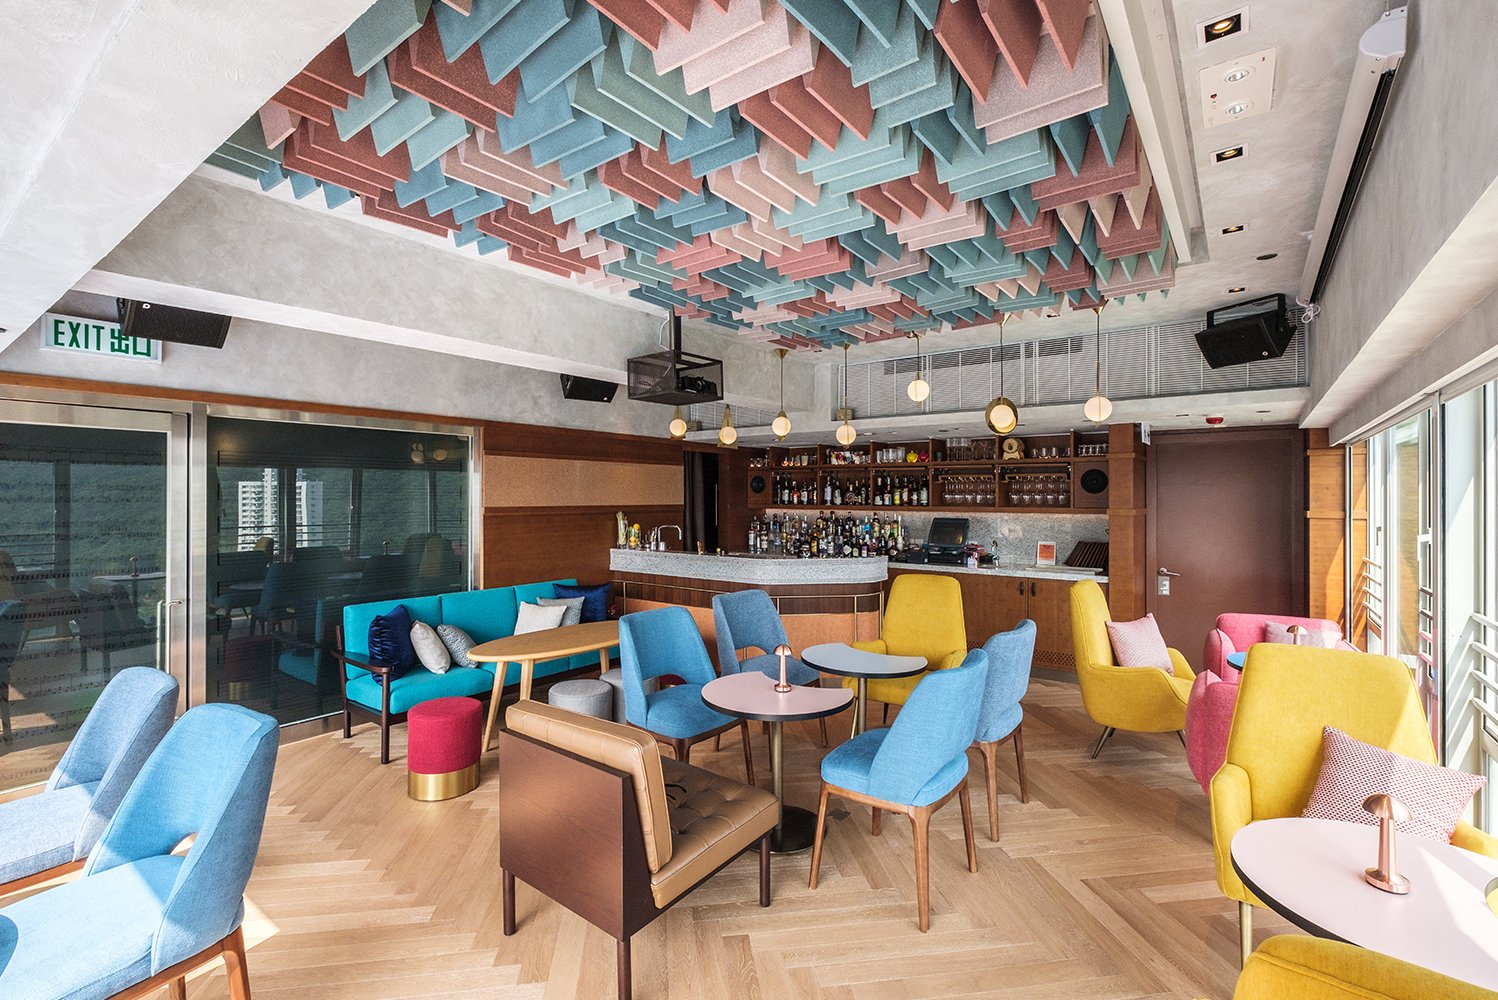 Studio HBA – a division of Hirsch Bedner Associates (HBA) – refreshed the social spaces of Ovolo Southside.